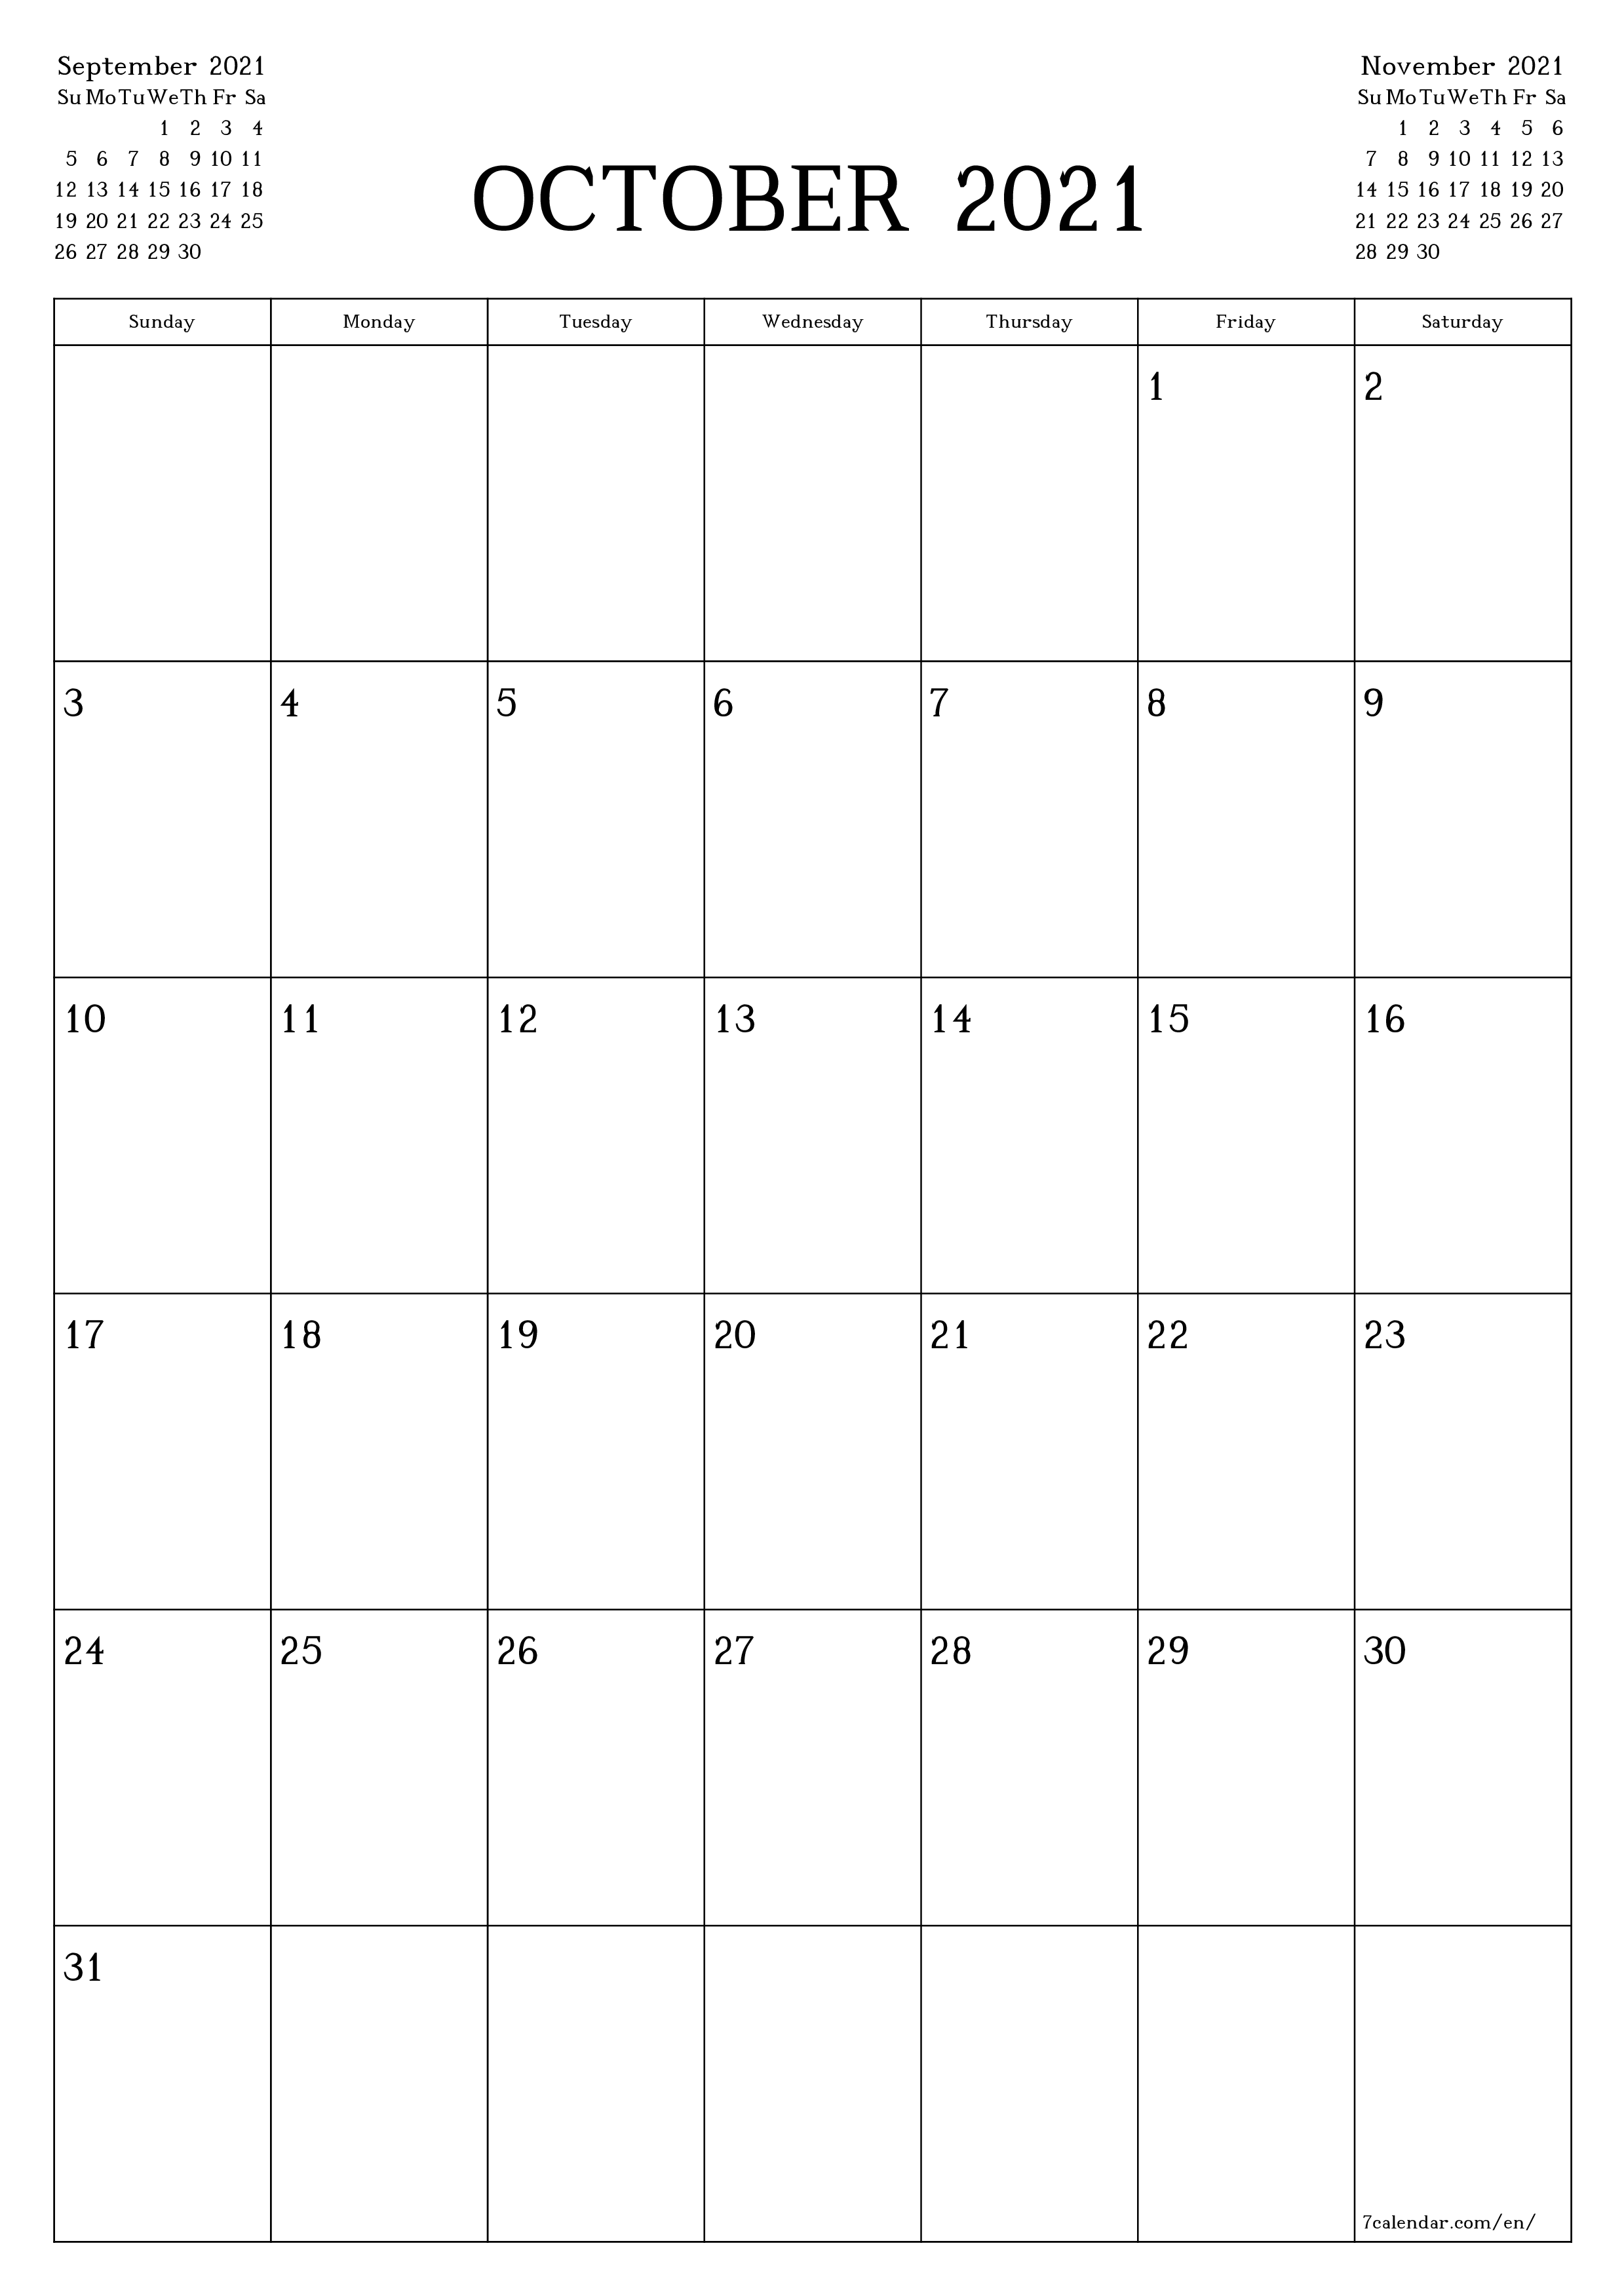 October 20 printable calendars and planners, PDF templates for ...